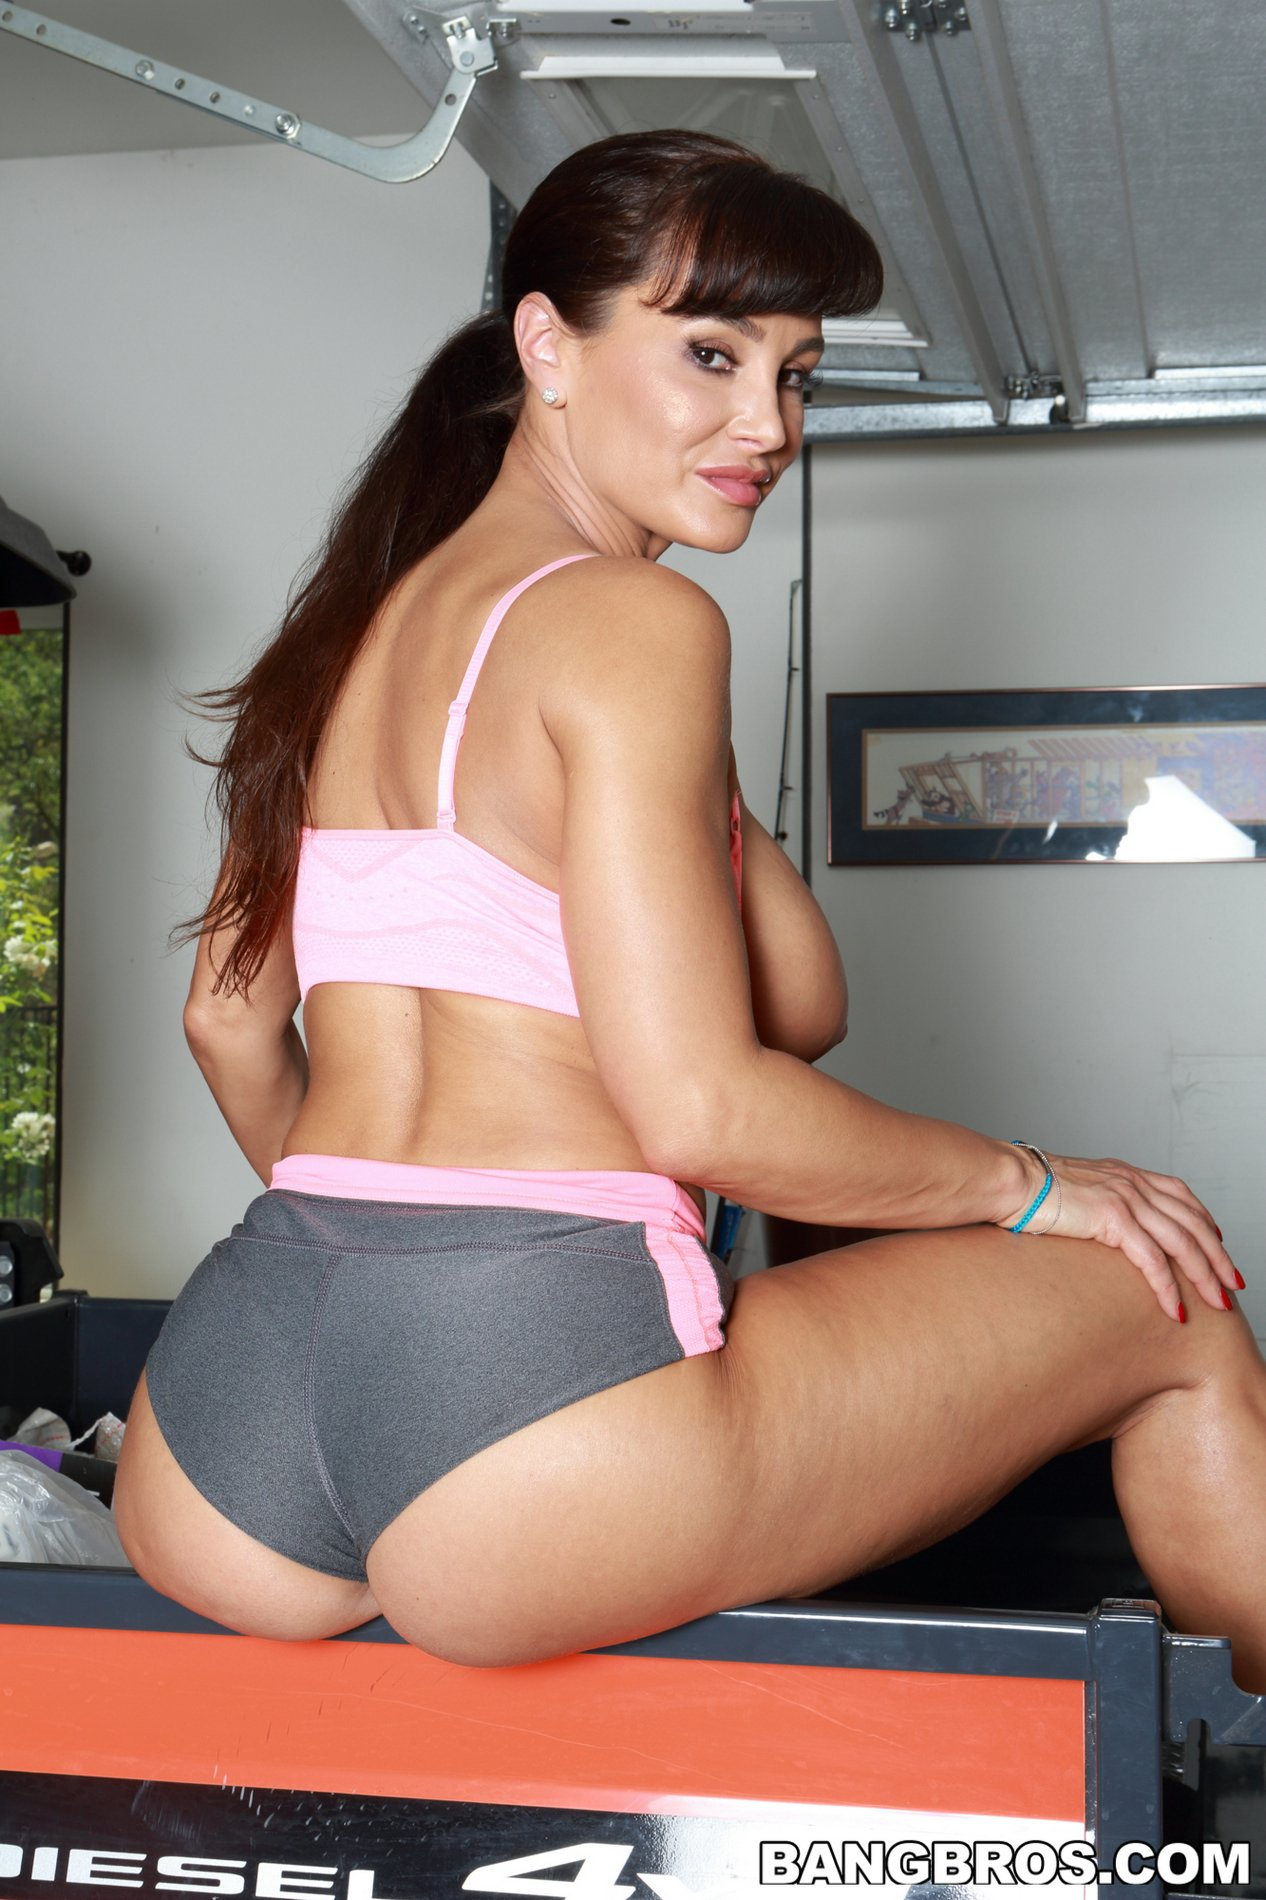 Hot Lisa Ann Pic hot busty sporty milf lisa ann shows off her amazing body